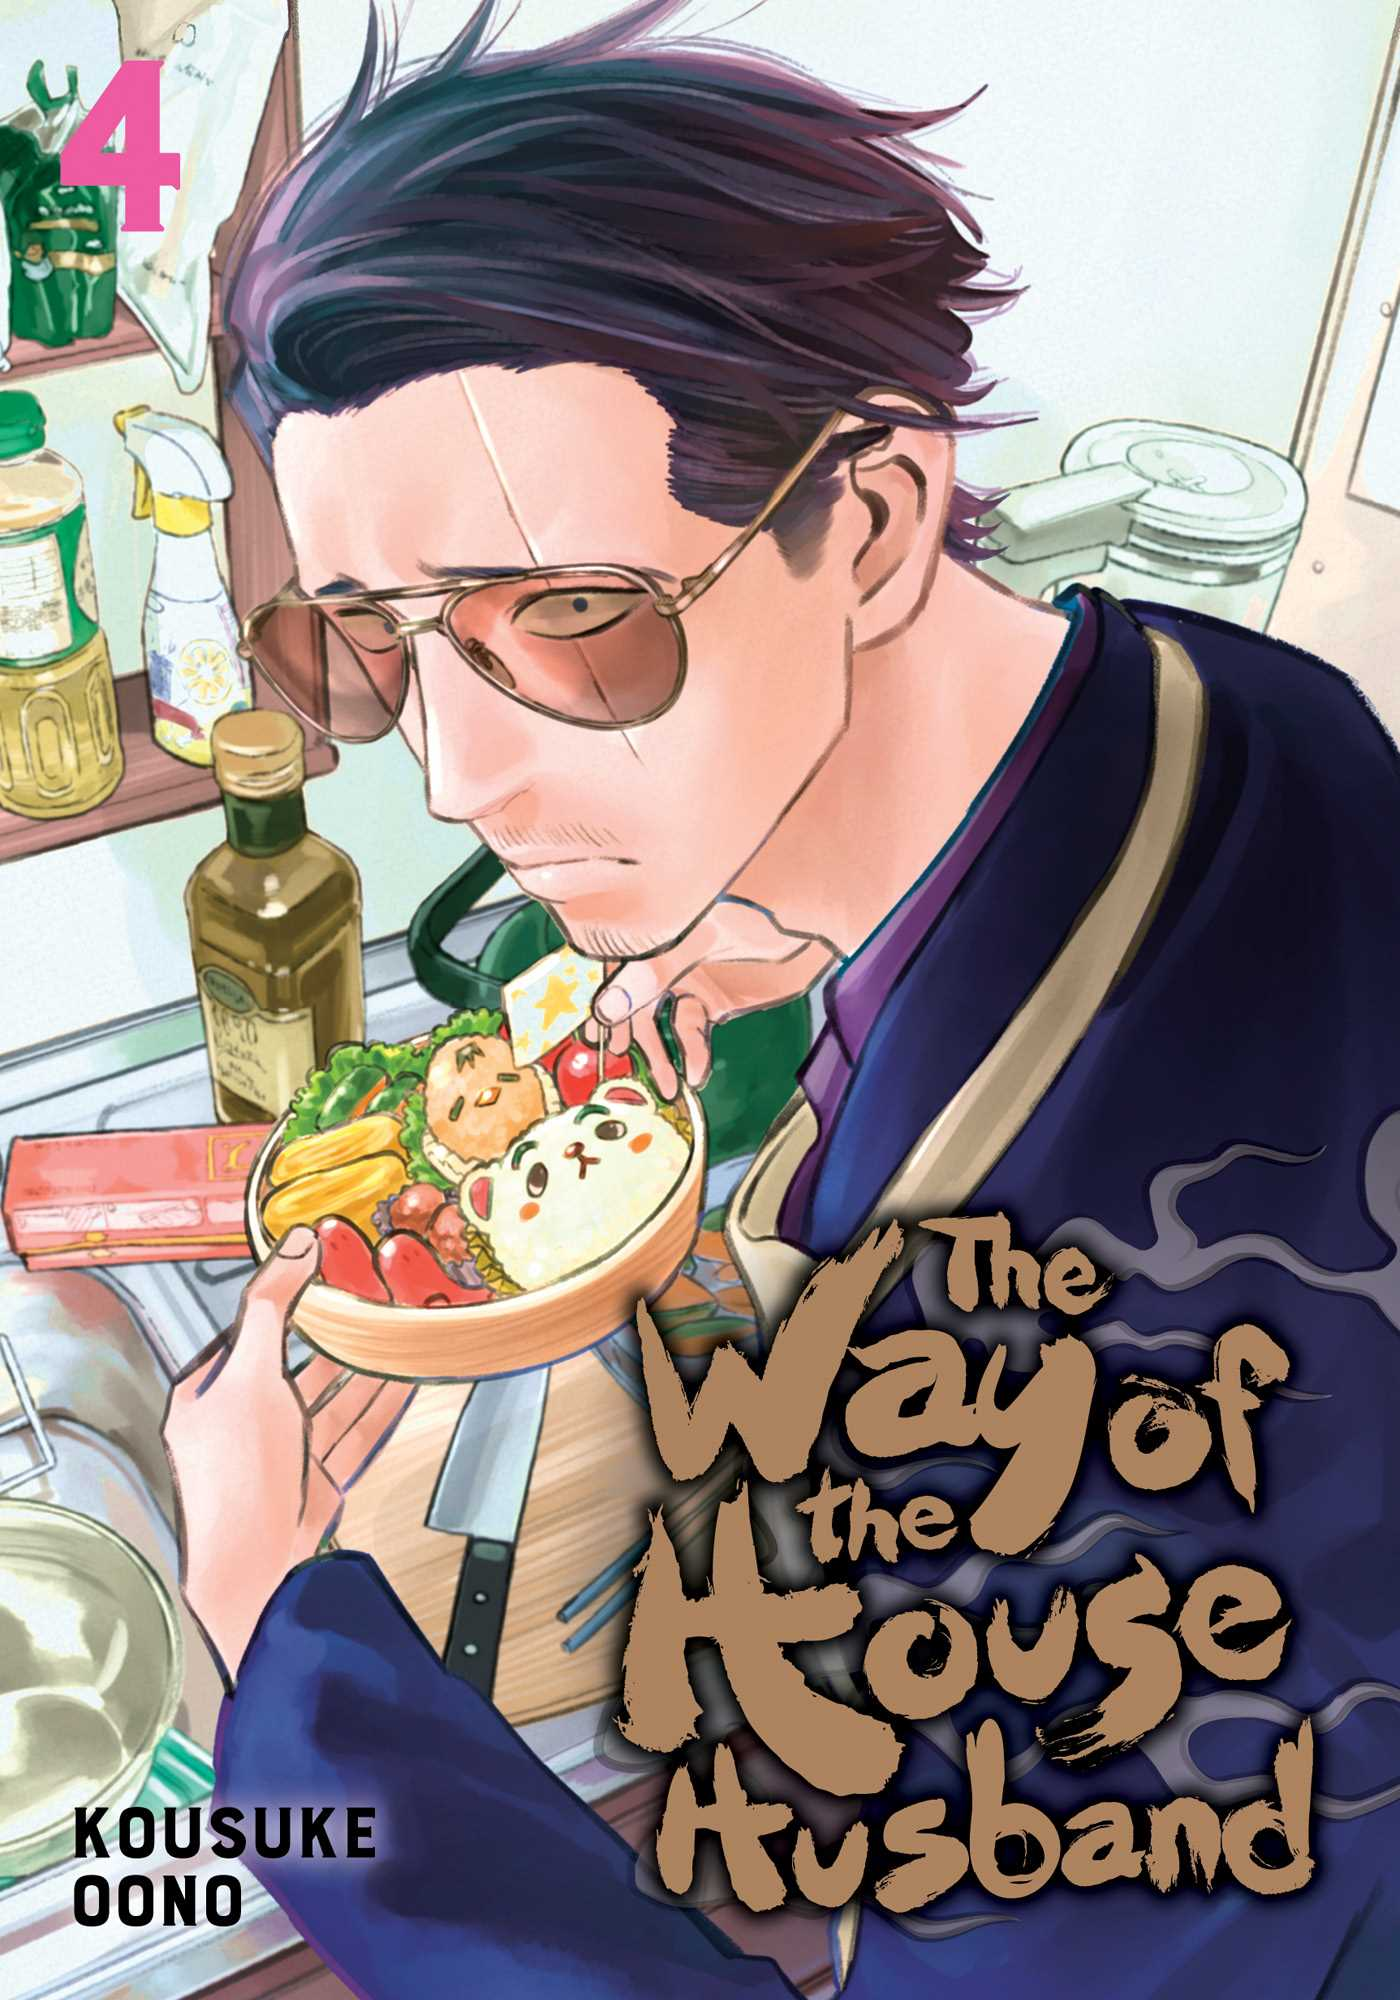 The Way of the Househusband, Vol. 4 by Kousuke Oono